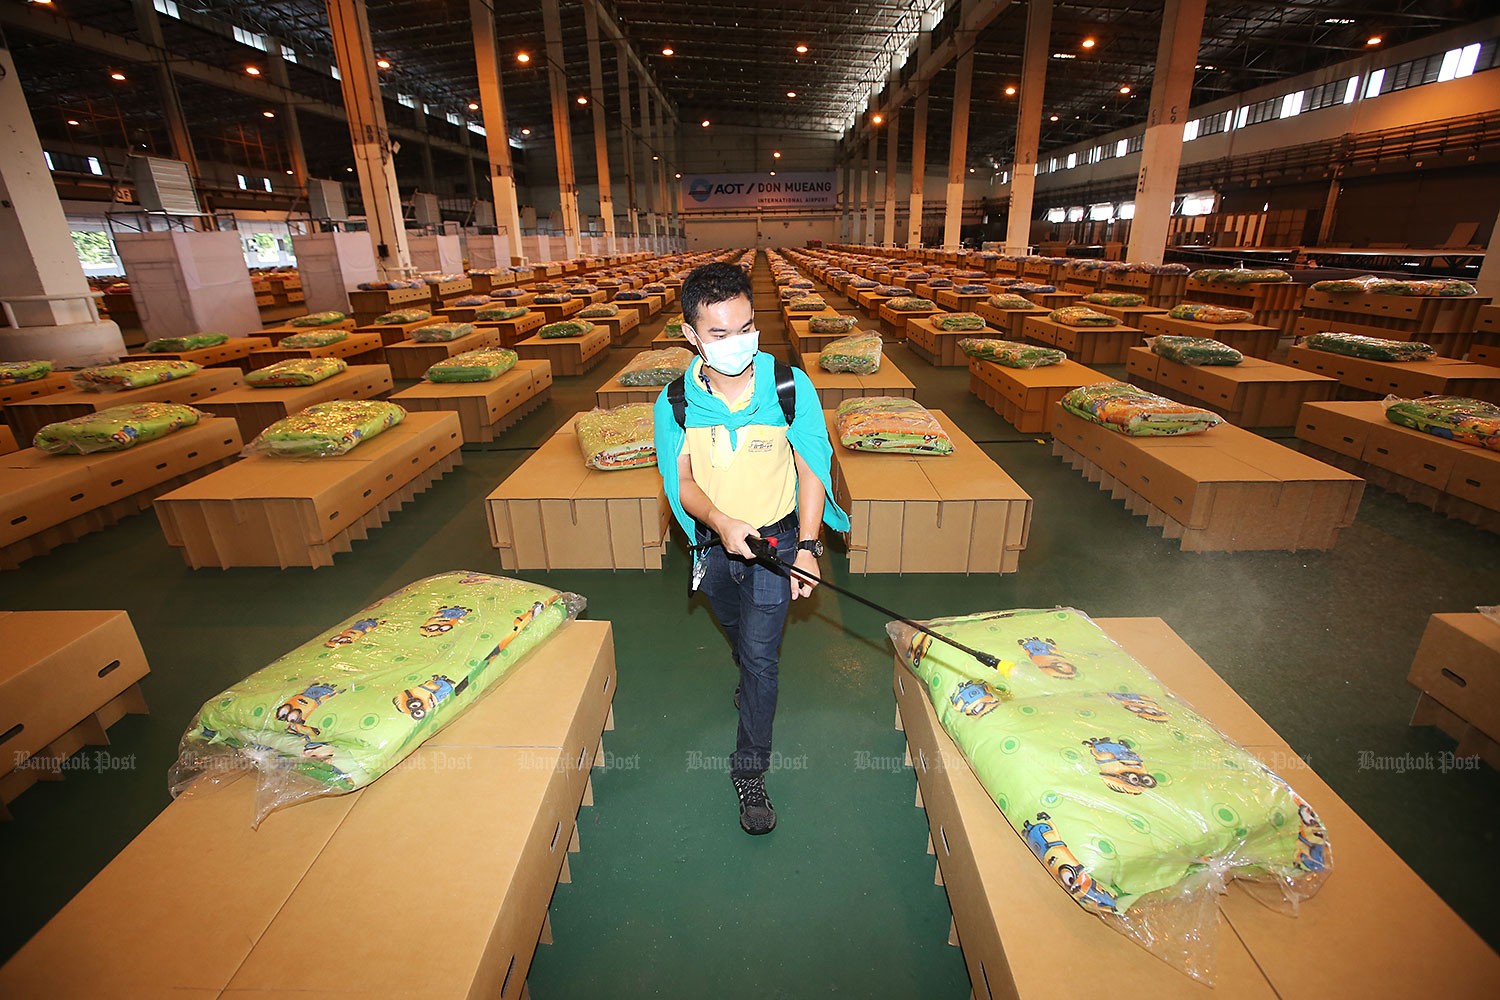 Covid cleaning: An official sprays disinfectant inside a warehouse which has been turned into a field hospital at Don Mueang airport. The field hospital, run by Mongkutwattana Hospital and capable of handling up to 2,000 patients, opened yesterday. (Photo: Pattarapong Chatpattarasill)